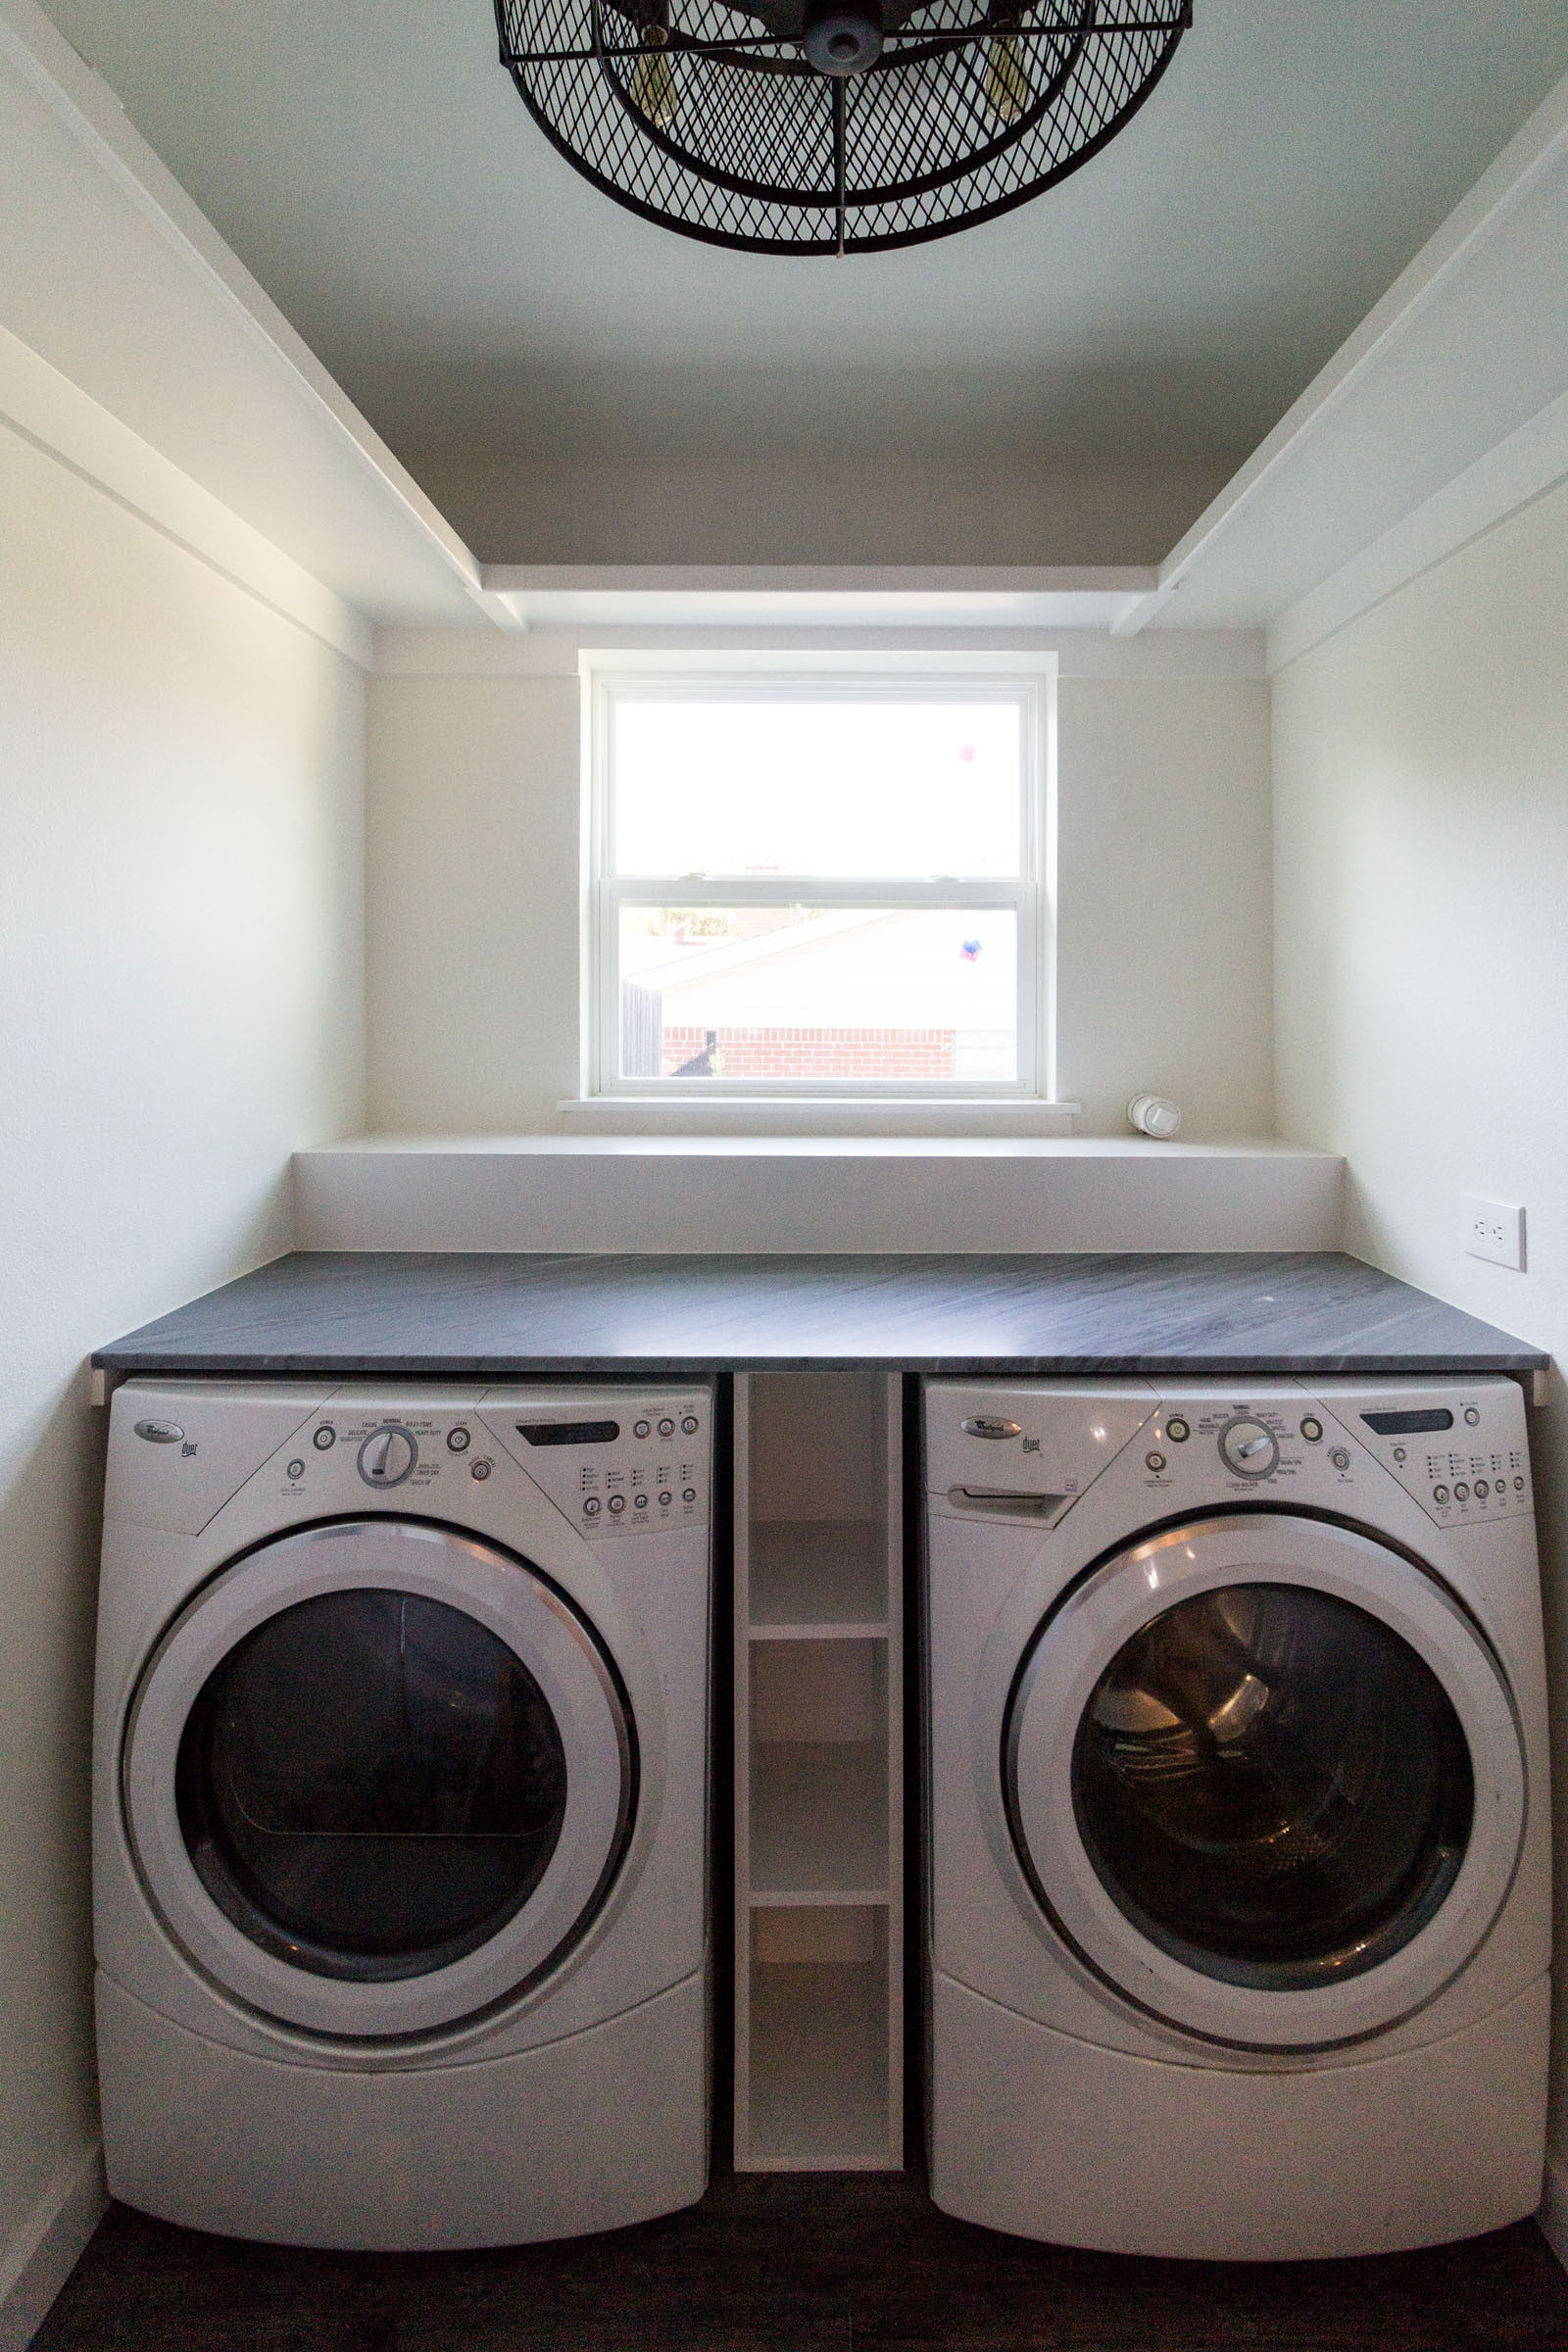 New laundry room, clean, minimalistic, white, washer and dryer, folding counter, window, built in storage